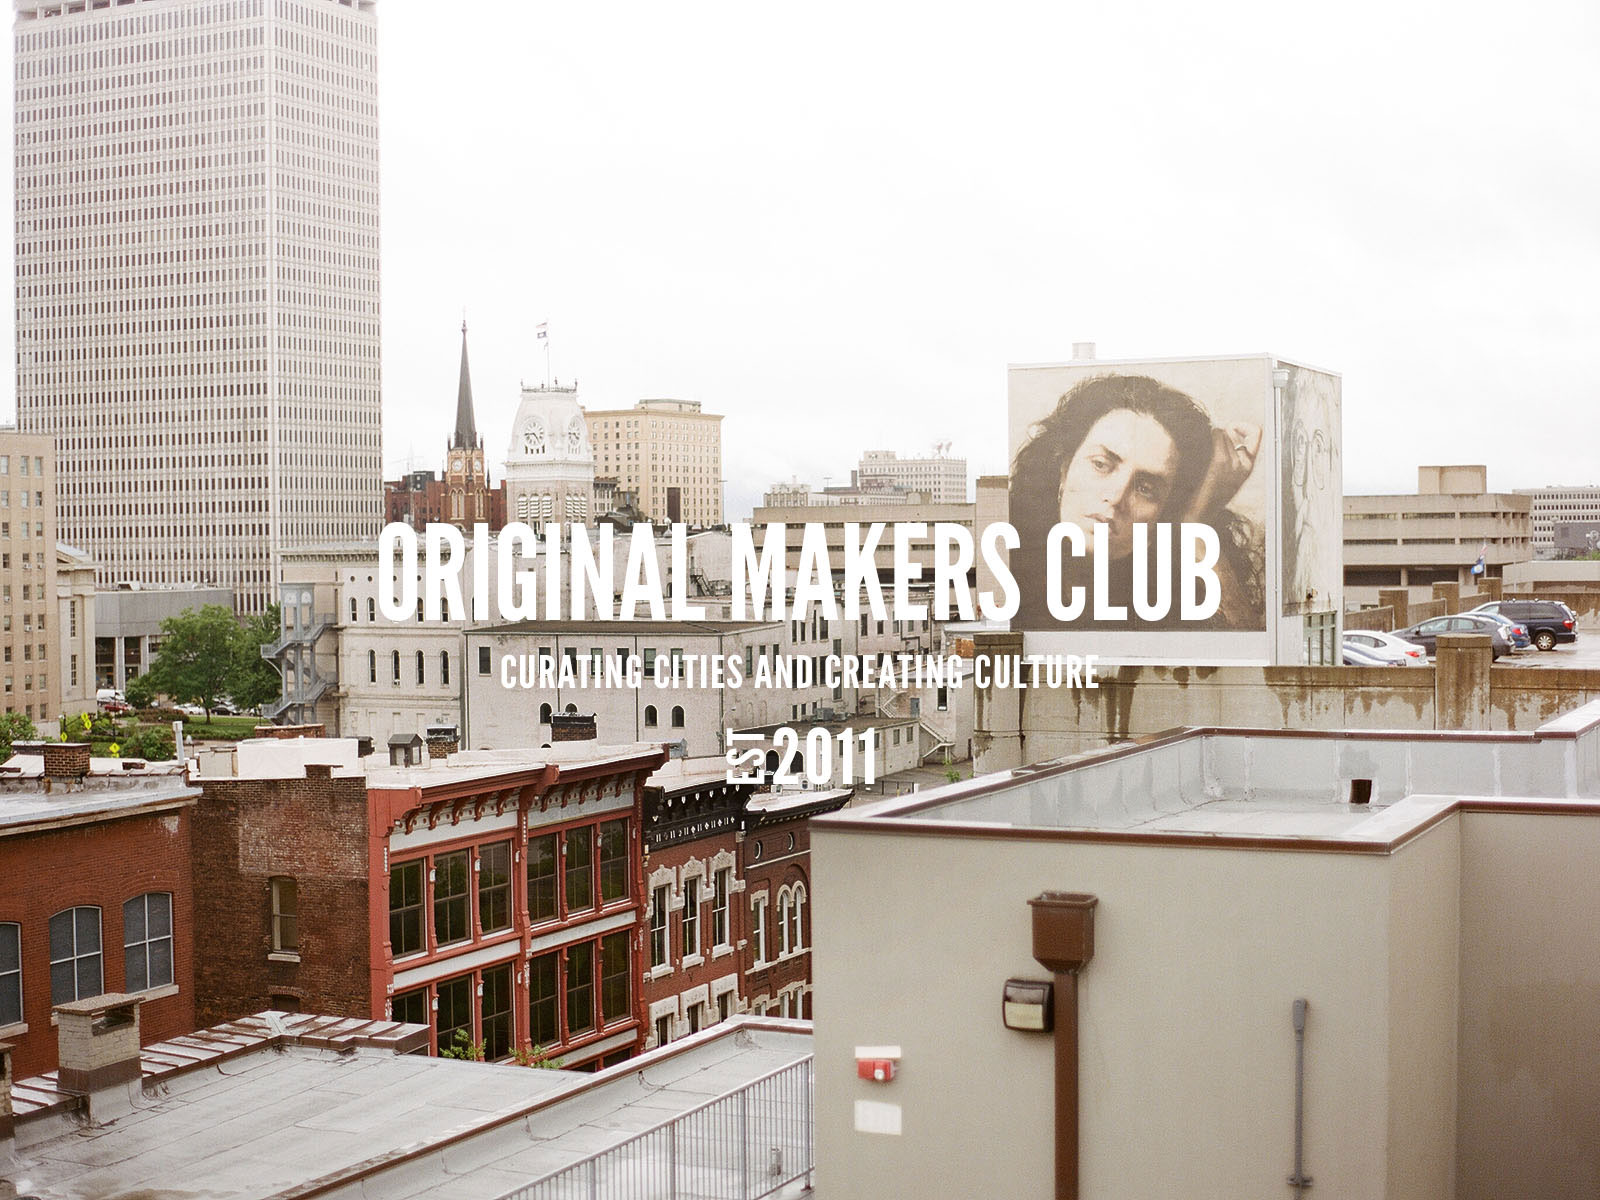 Enter the Original Makers Club